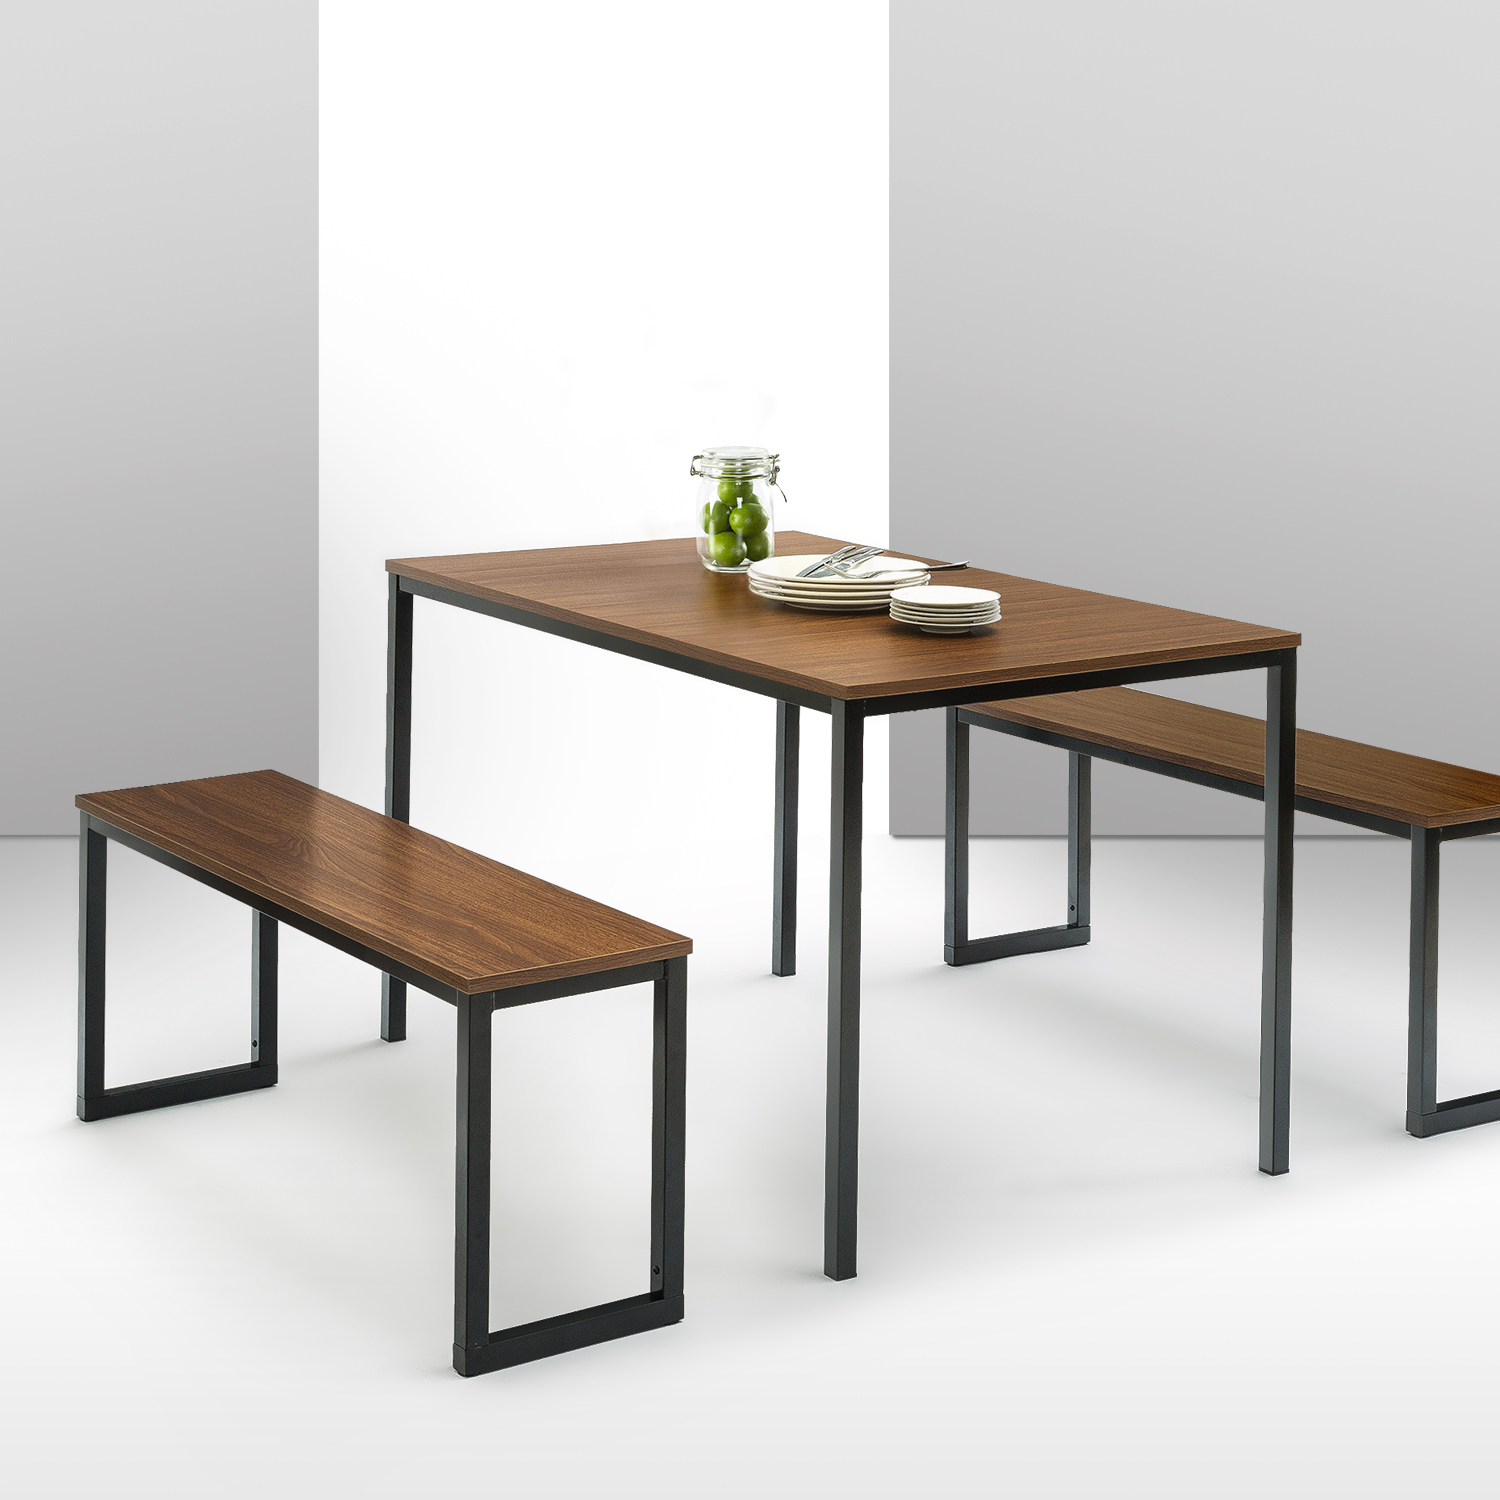 Soho Dining 3 Piece Table With Two Benches Set Brown